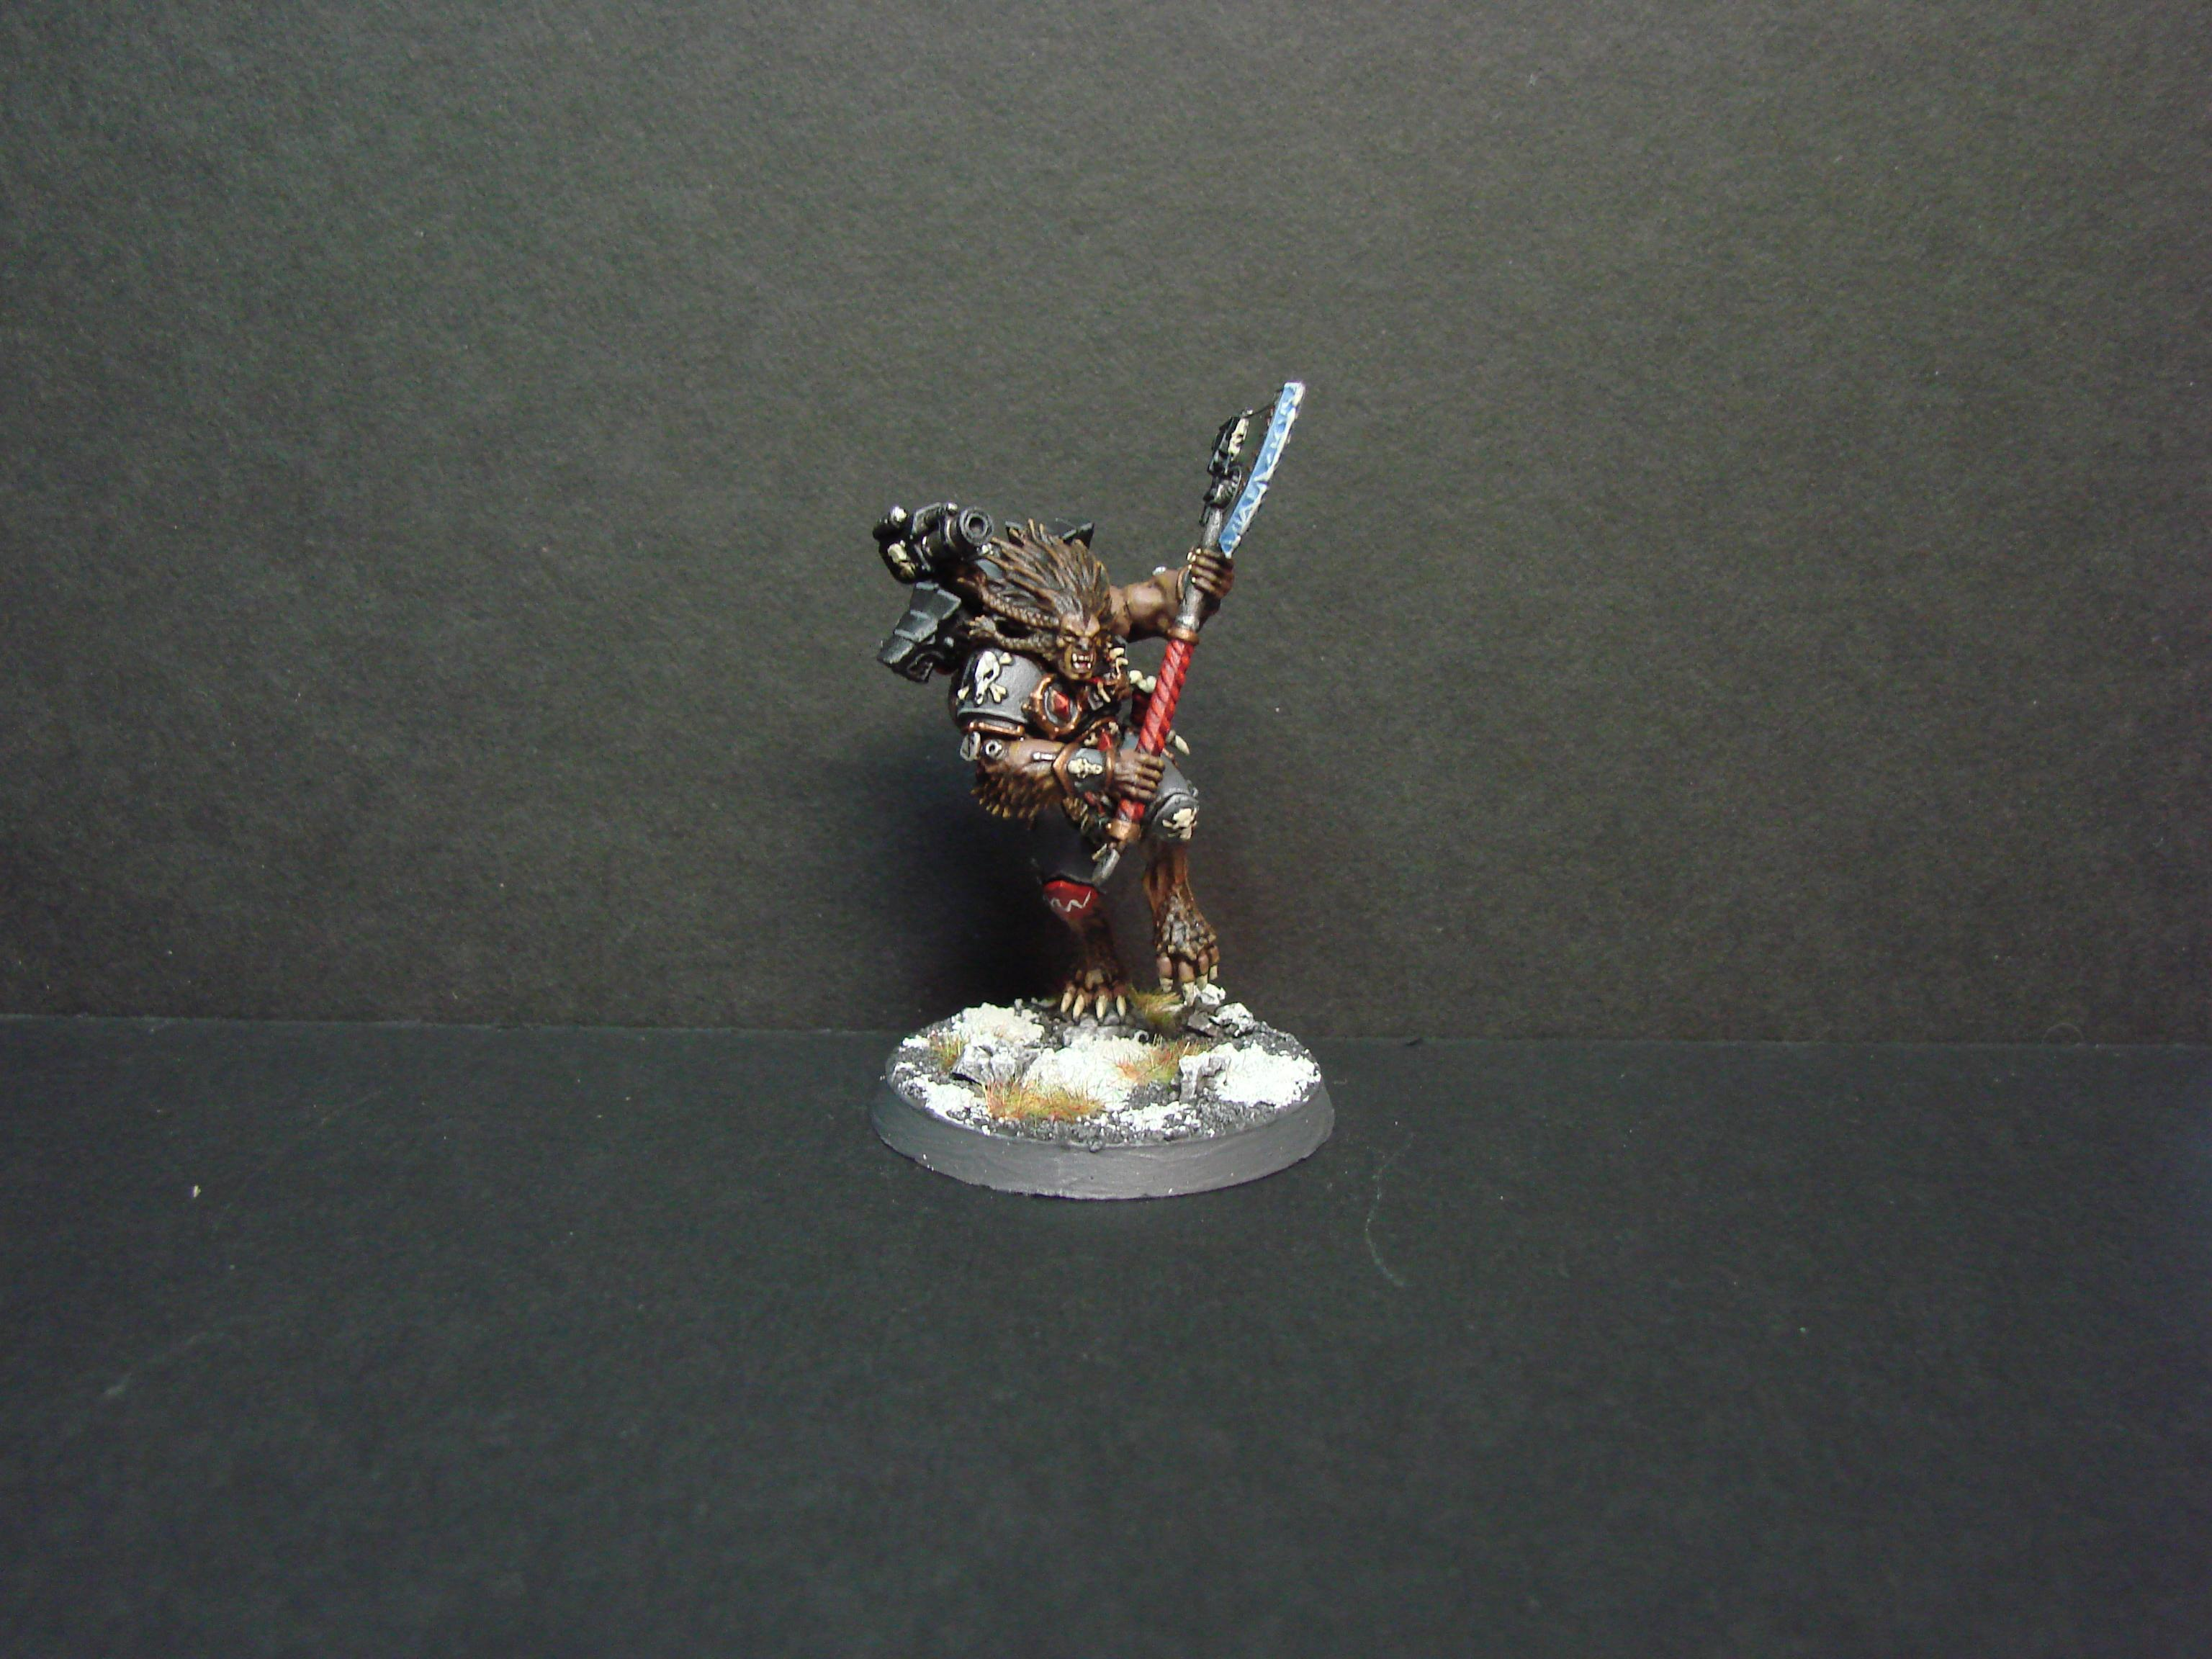 13th Company, Adeptus Astartes, Space Marines, Space Wolves, Vlka Fenryka, Wolfen